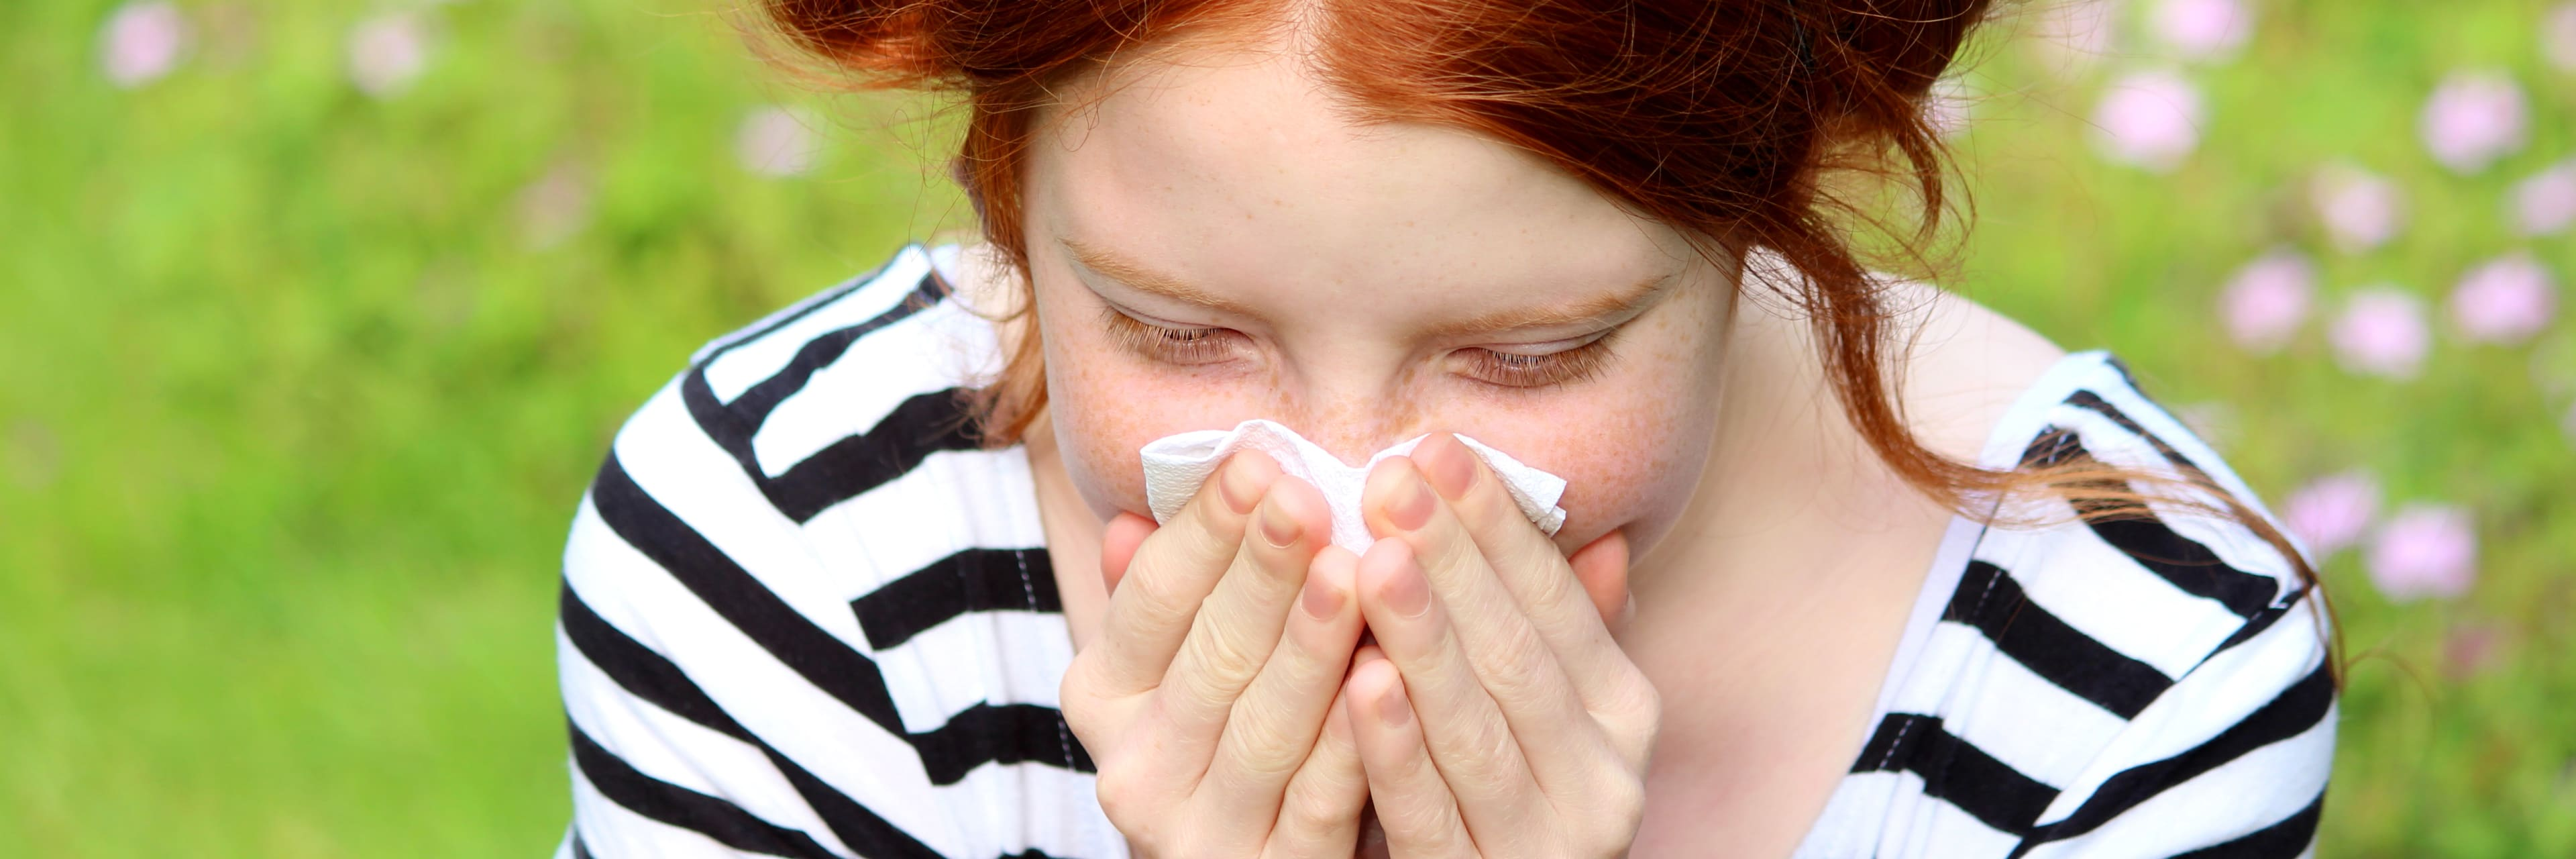 girl blowing her nose in a field